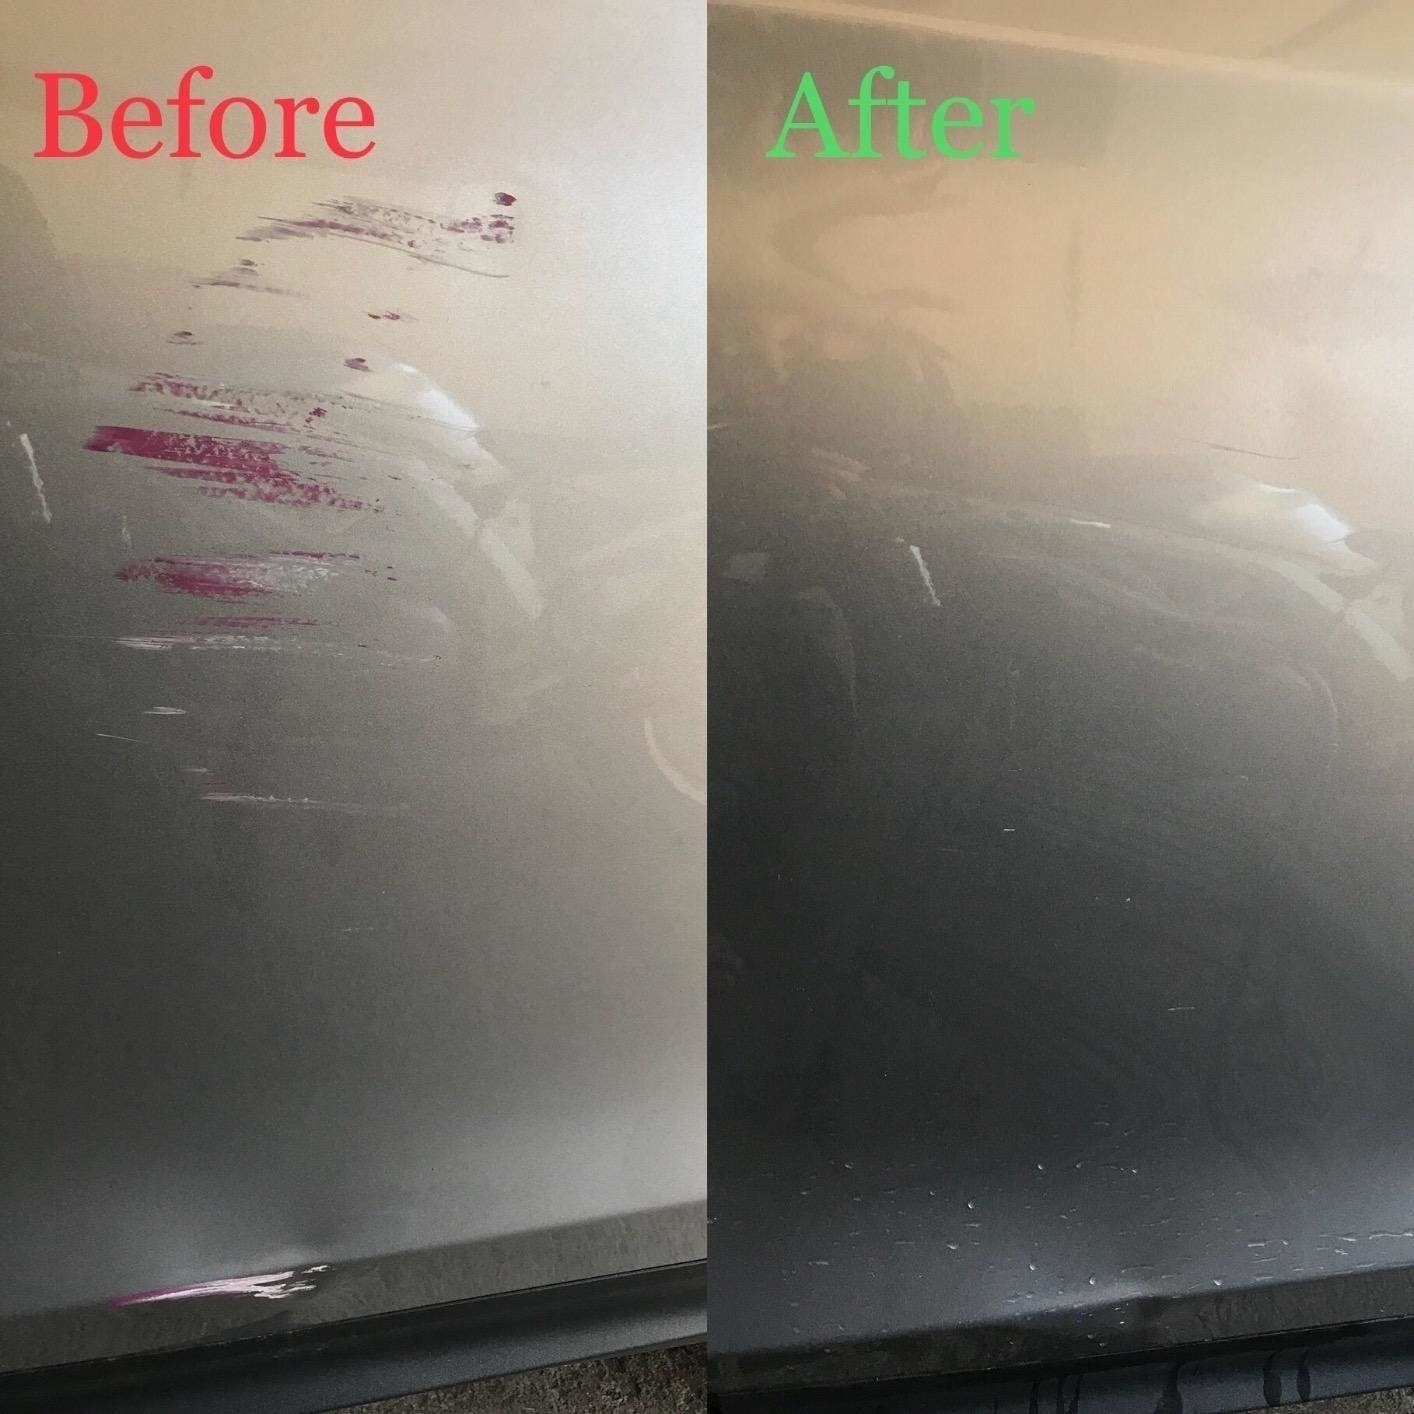 Reviewer before and after photo showing paint scratches removed from a car door